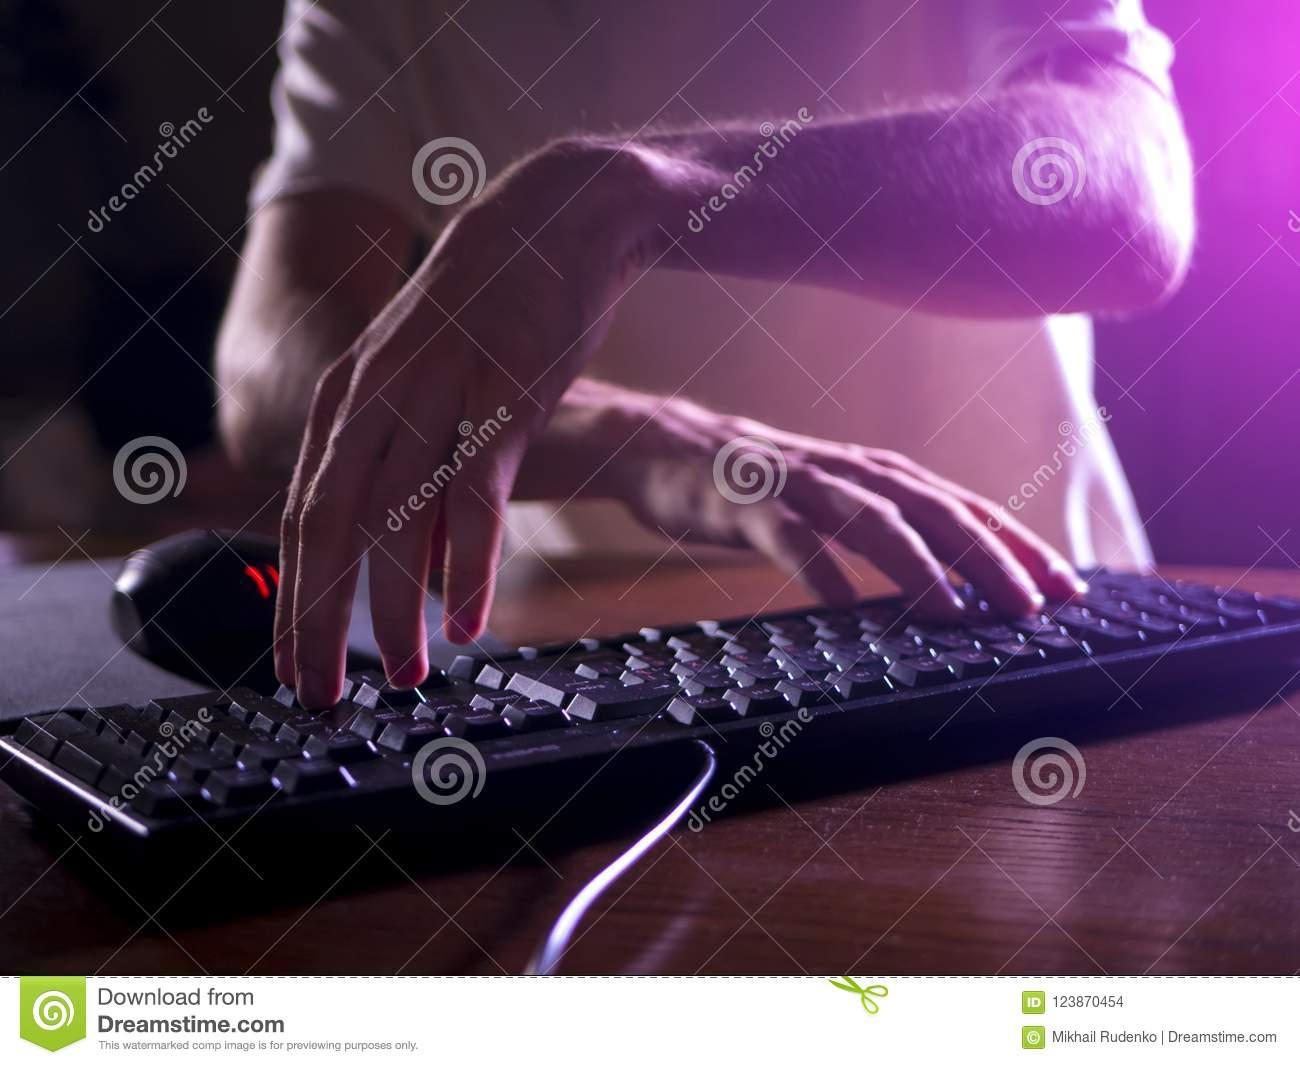 Close up gamer hands on the keyboard playing video games in night